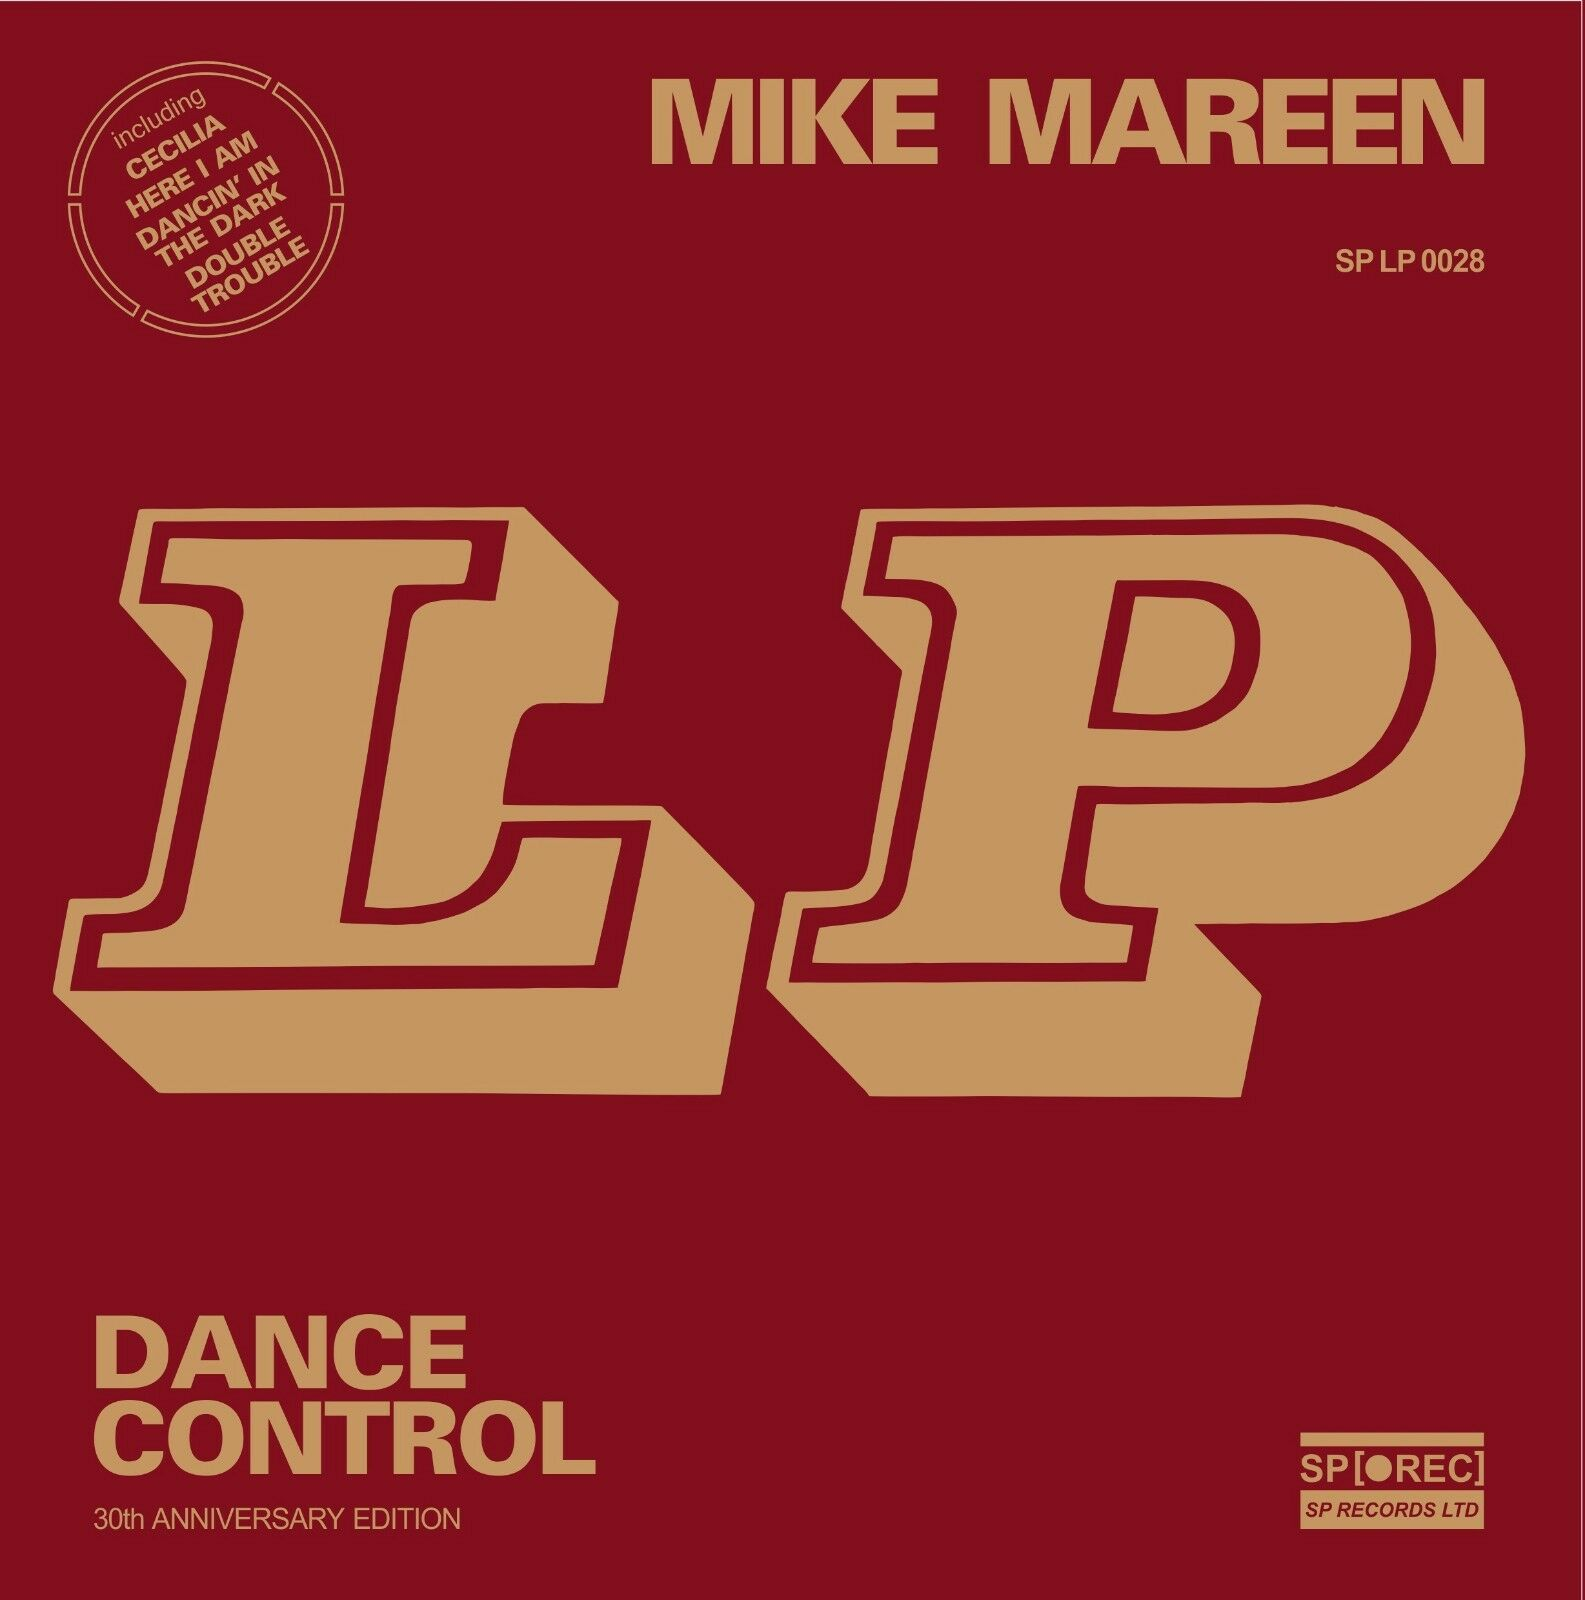 mike mareen lp dance control 2015 vinyl reis only 300 copy italo